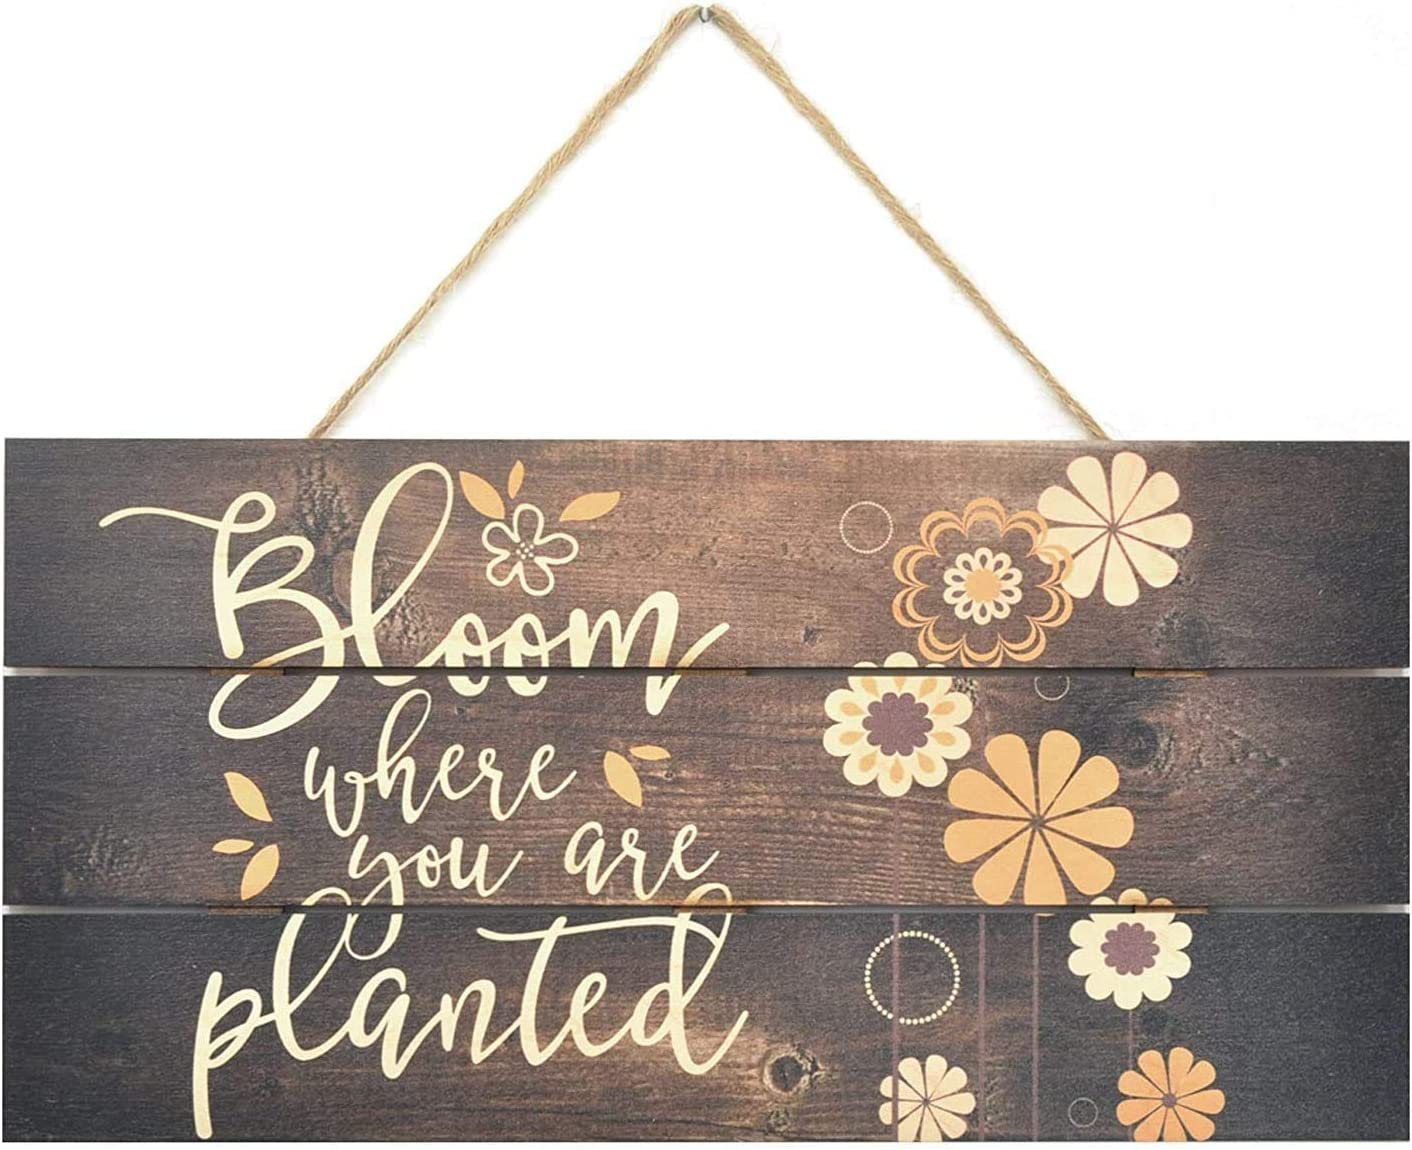 Rustic Wood Signs Bloom Where You are Planted Wooden Plank Plaque Home Decor 5 x 10 Inches(YQ122540)